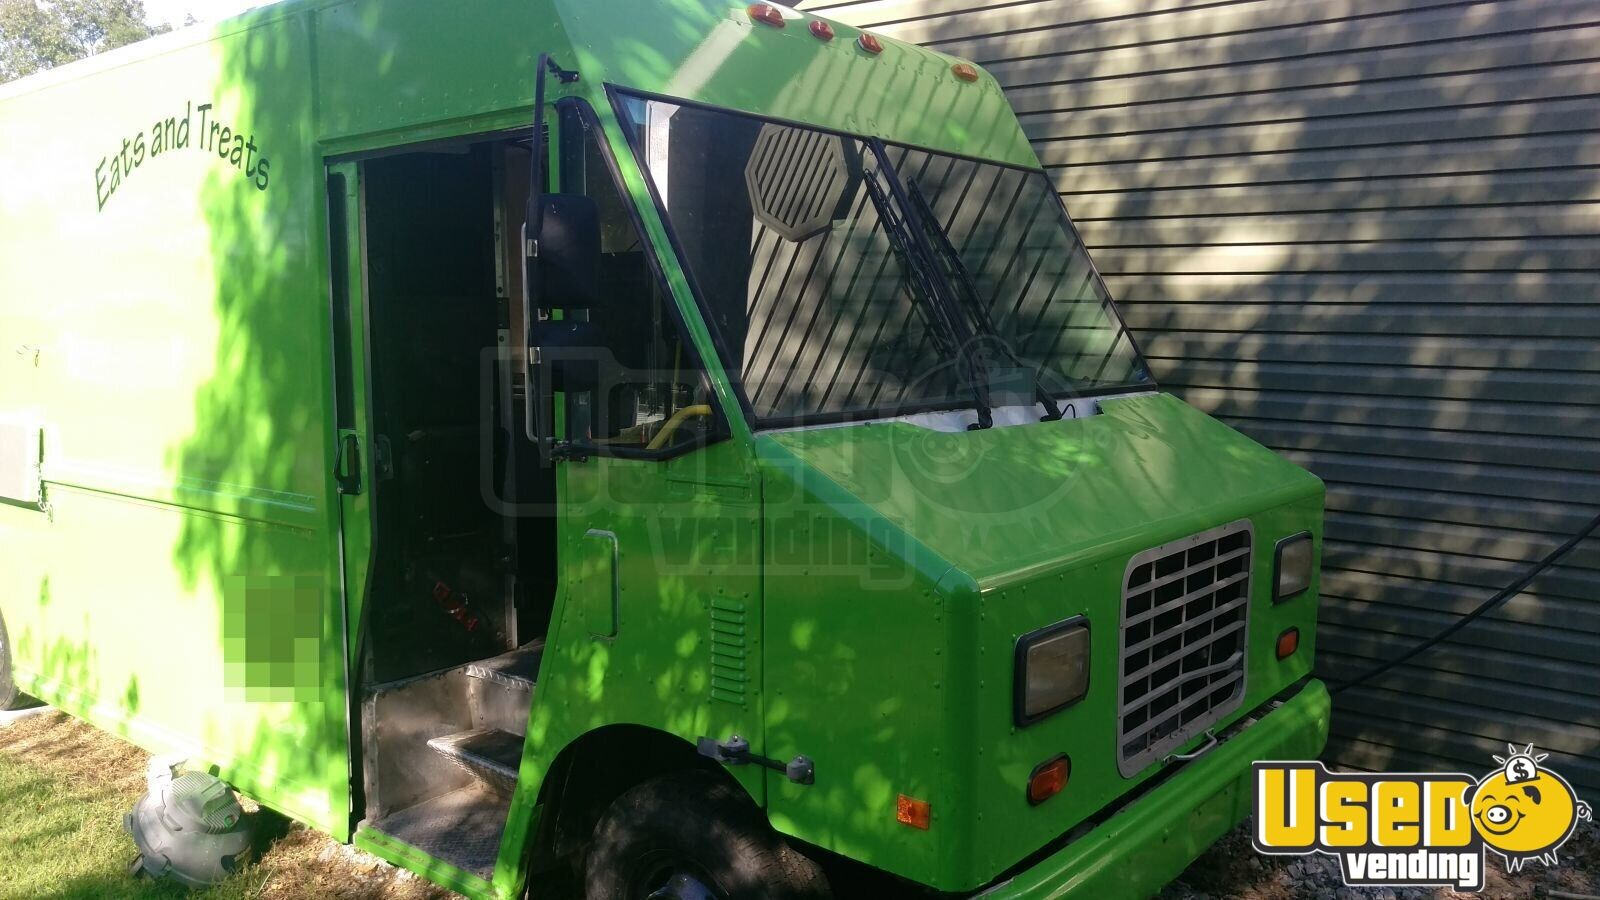 1998 Chevrolet P30 Food Truck Generator Missouri for Sale - 3